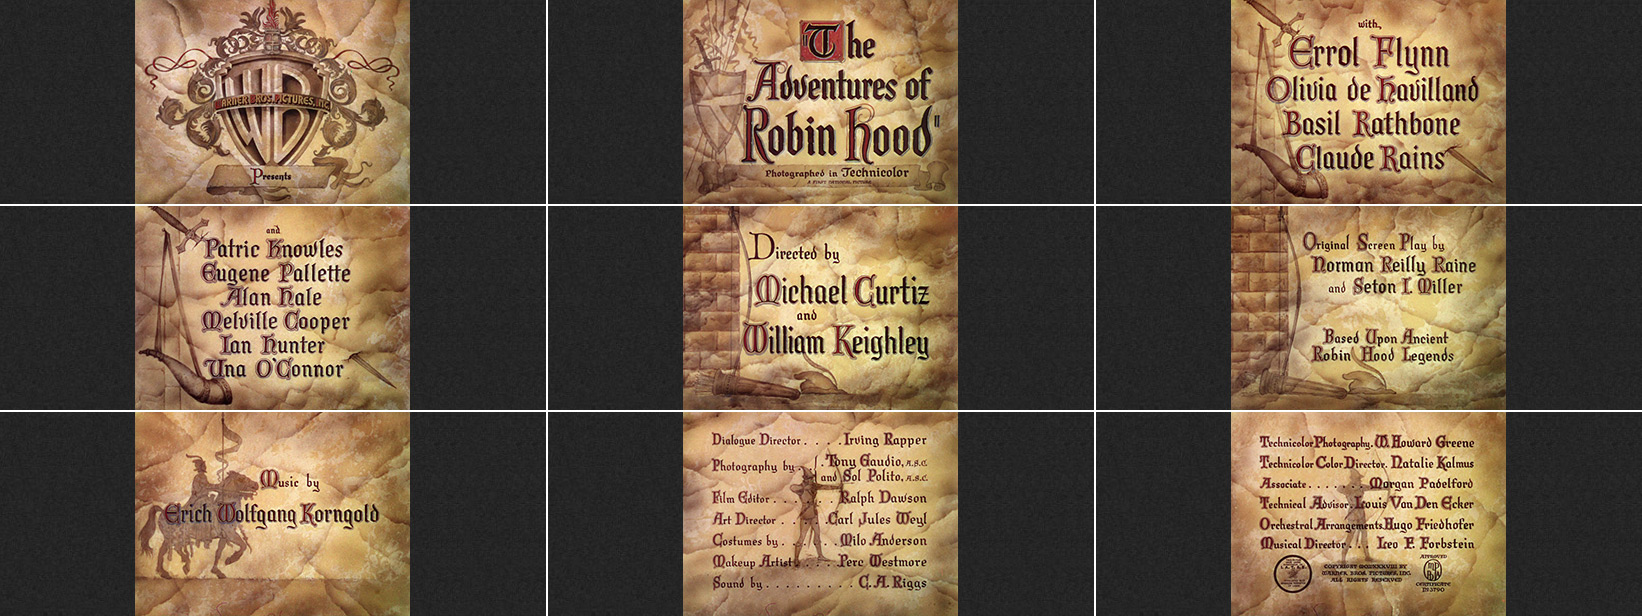 Michael Curtiz: The Adventures of Robin Hood (1938) title sequence